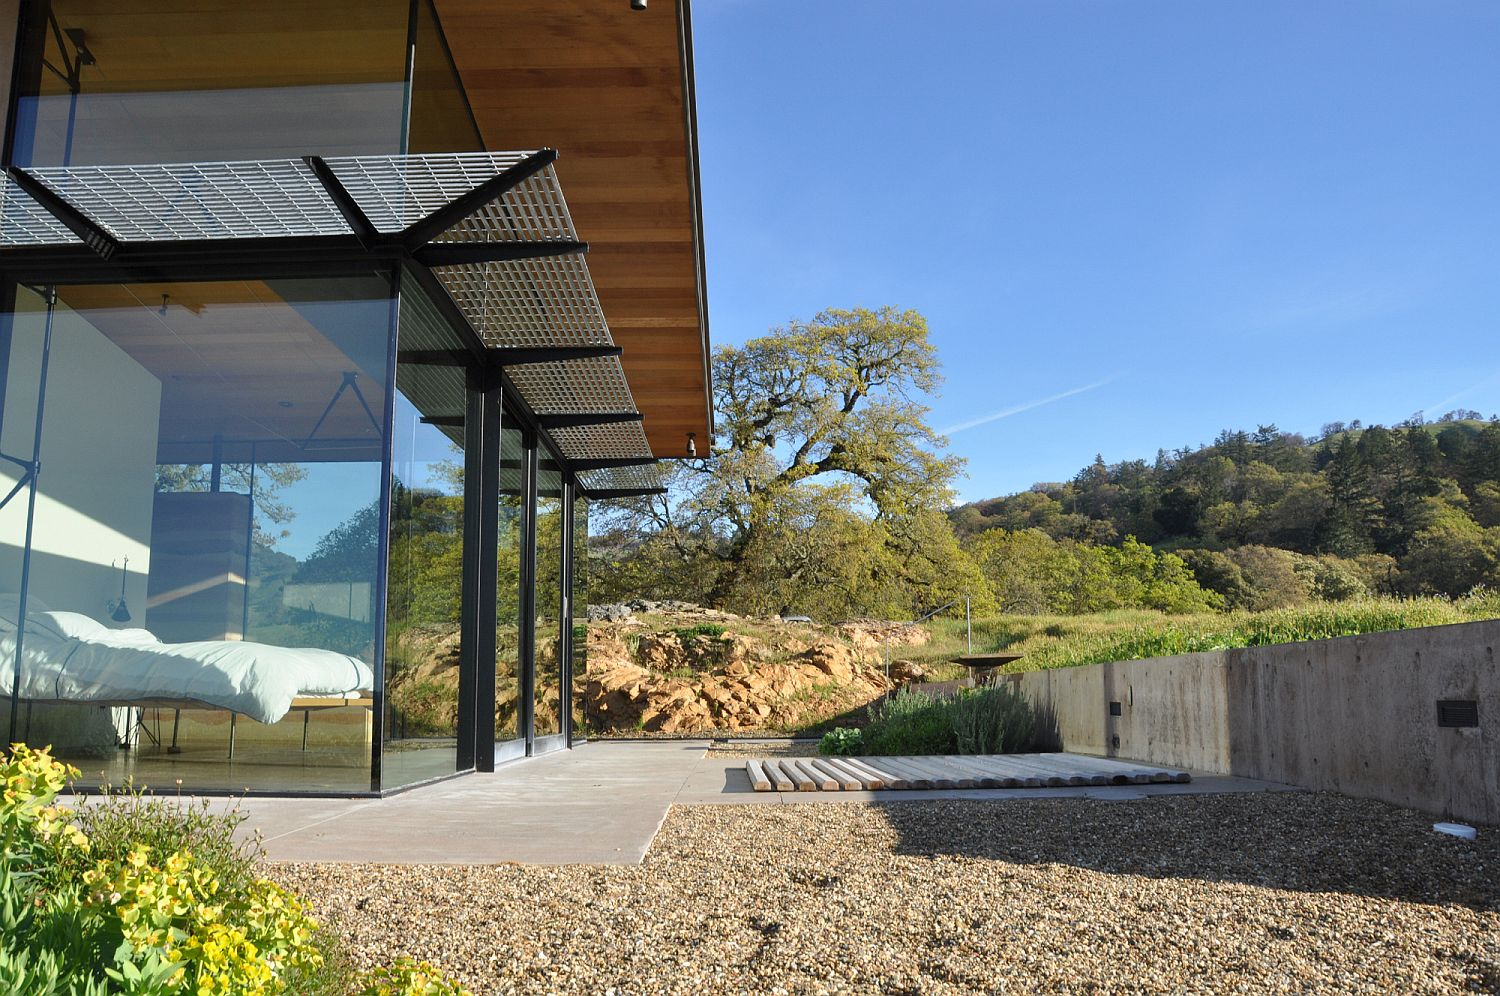 Steel and wood frame of the house accentuated by the extensive use of glass